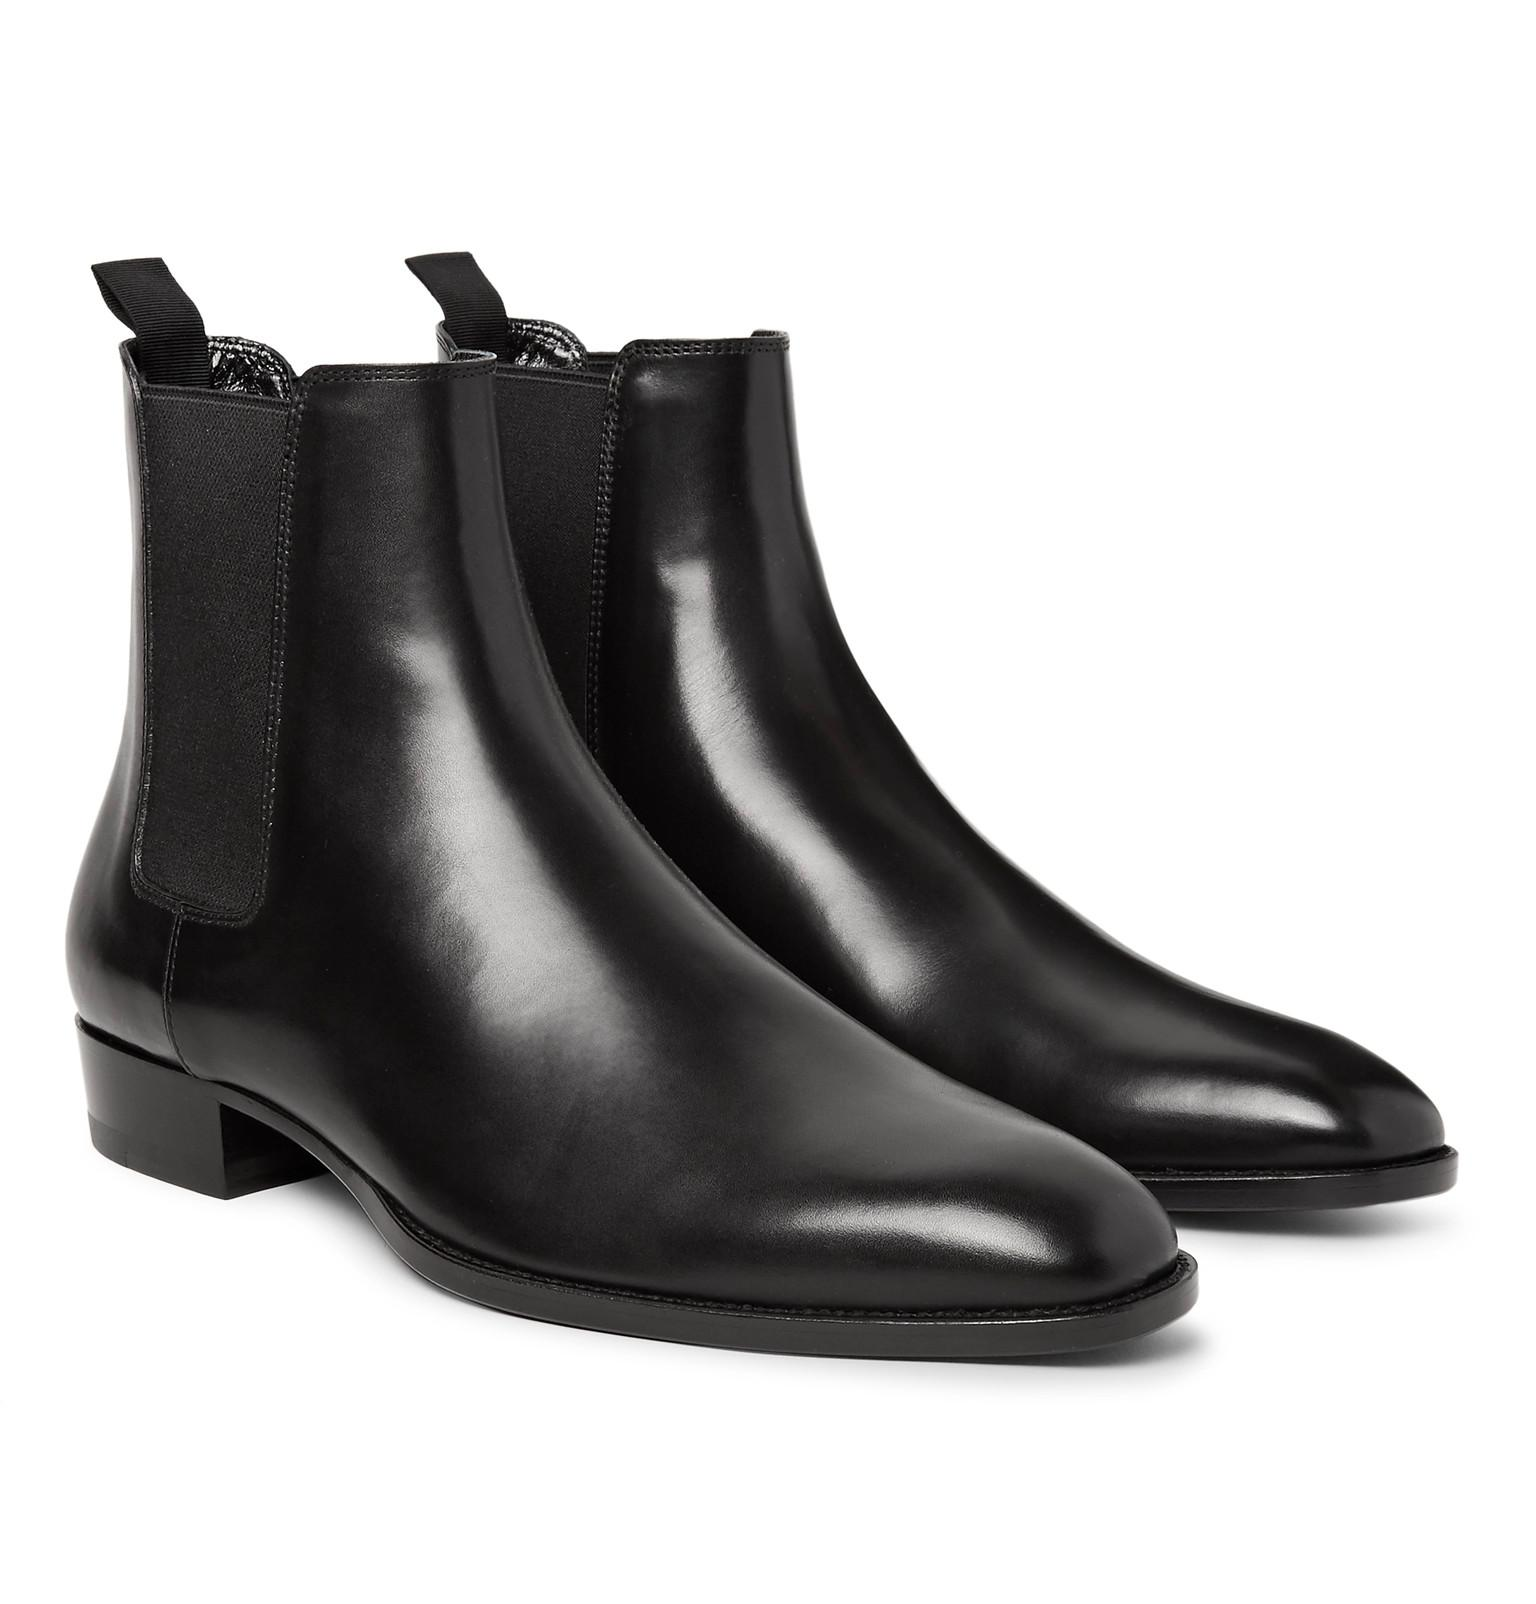 d9a079c1ae9 ... Lizard-Effect Suede Chelsea Boots in Brown for Men Saint laurent  Polished-leather Chelsea Boots in Black for Men | Lyst